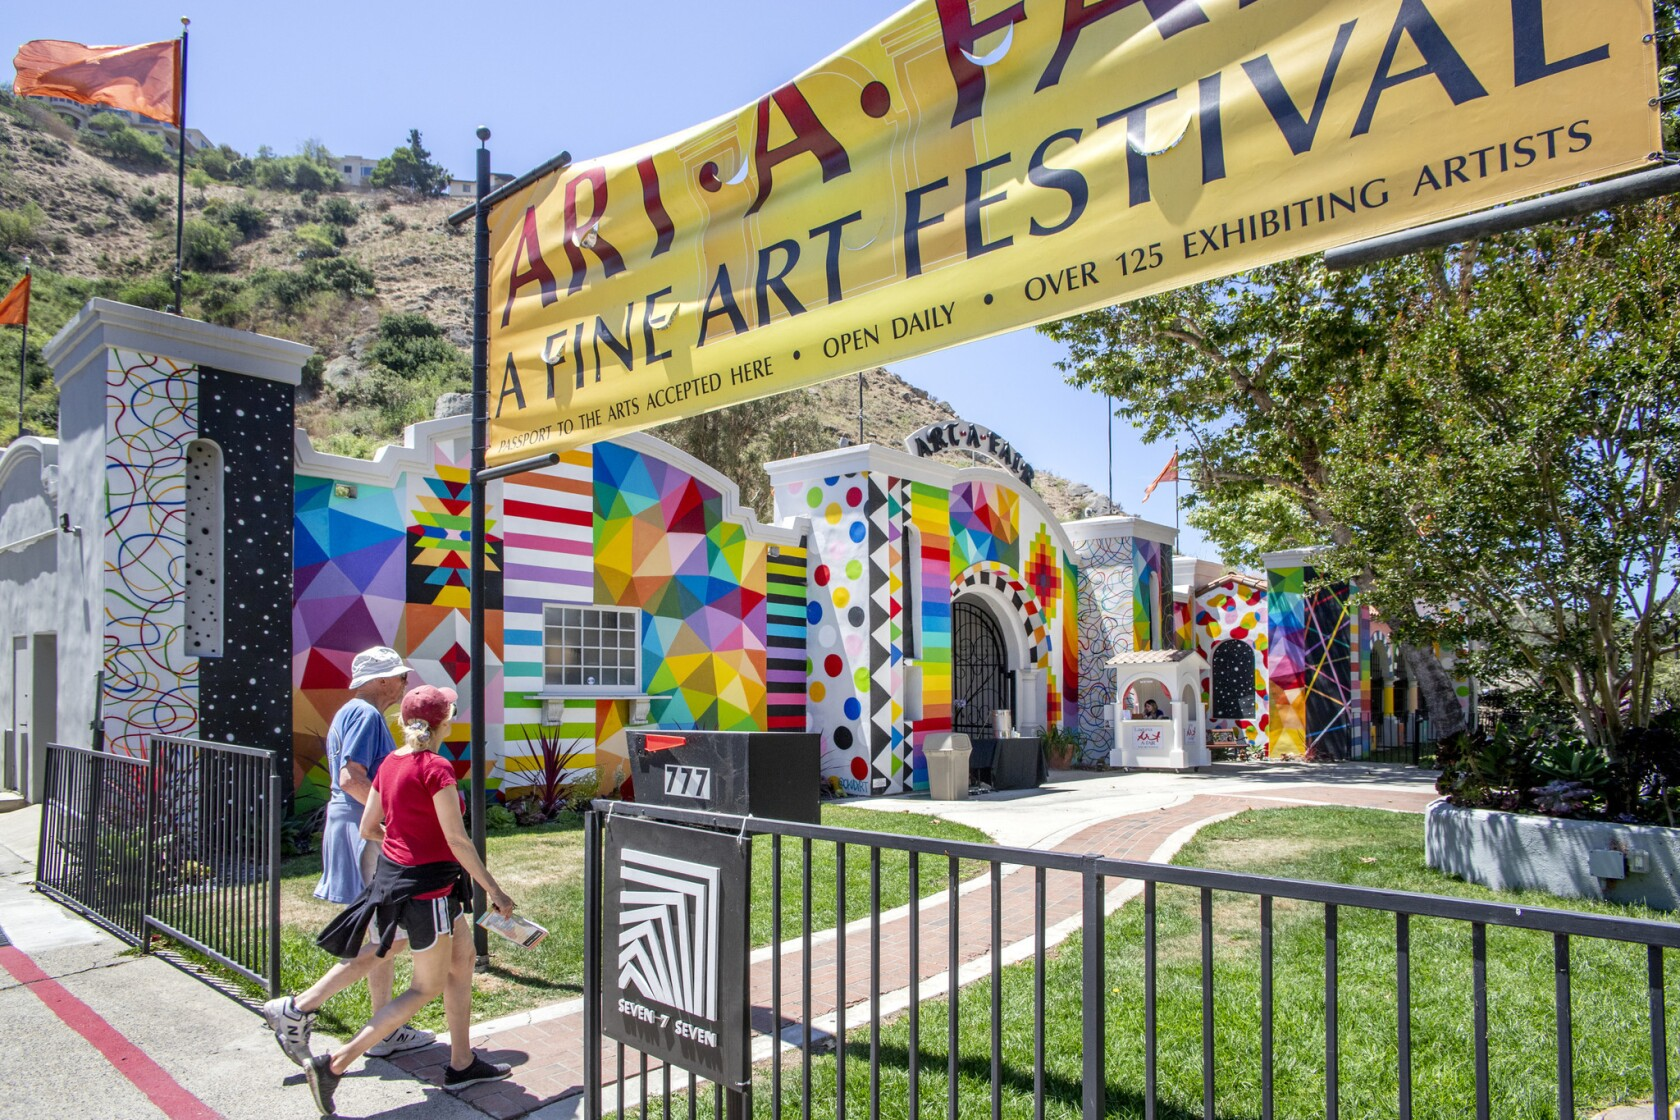 Art-A-Fair puts on a colorful show in Laguna Beach - Los